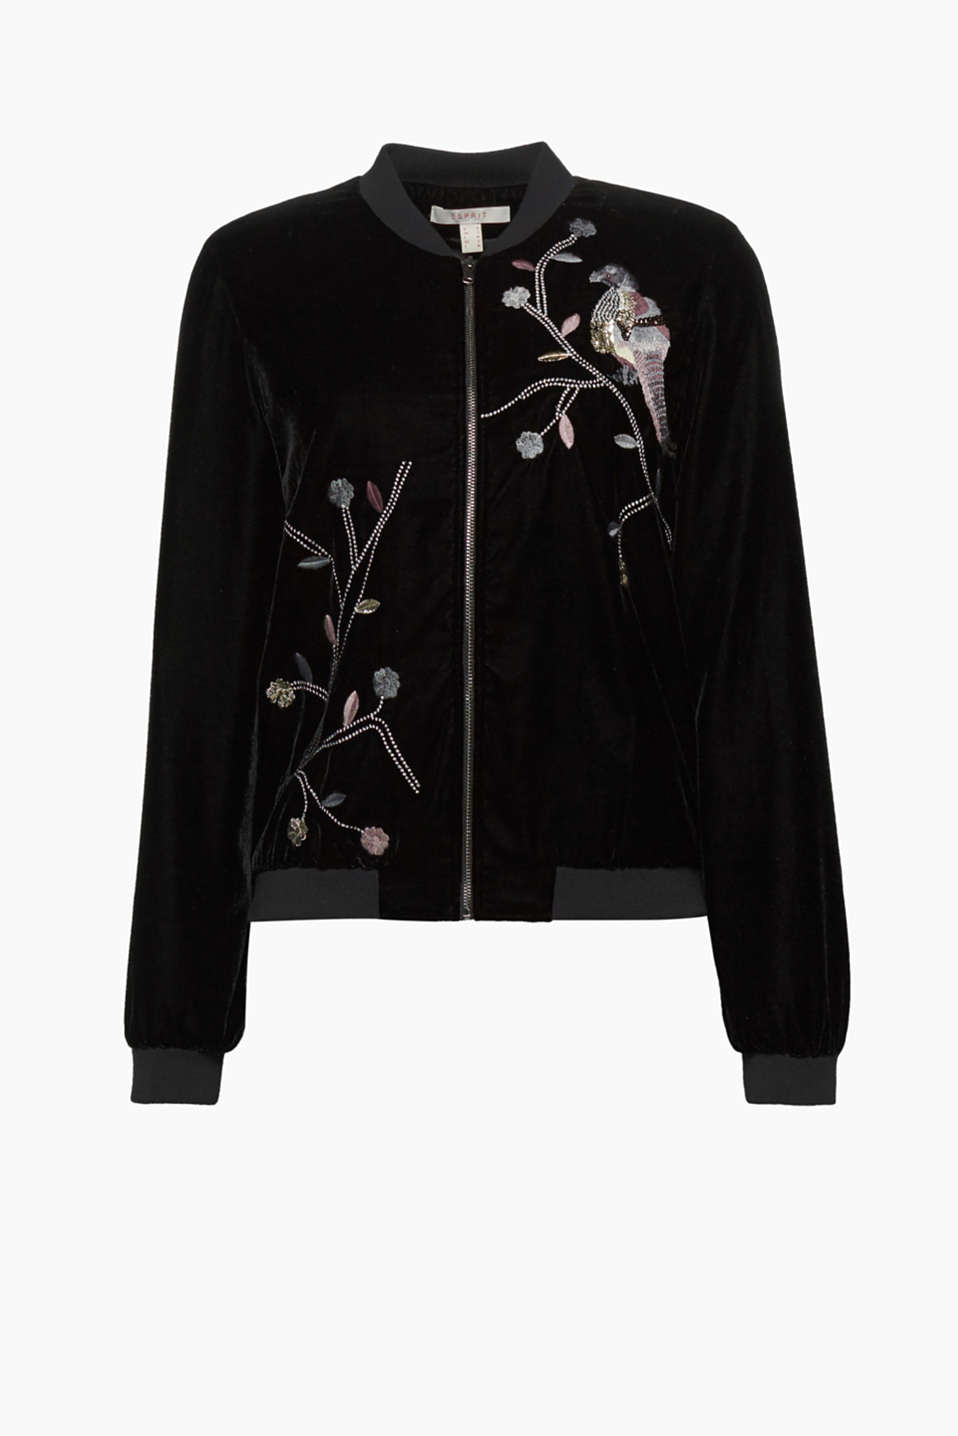 A true gem: This bomber jacket made of soft velvet with elegant sequin embroidery will give you a glamorous look!